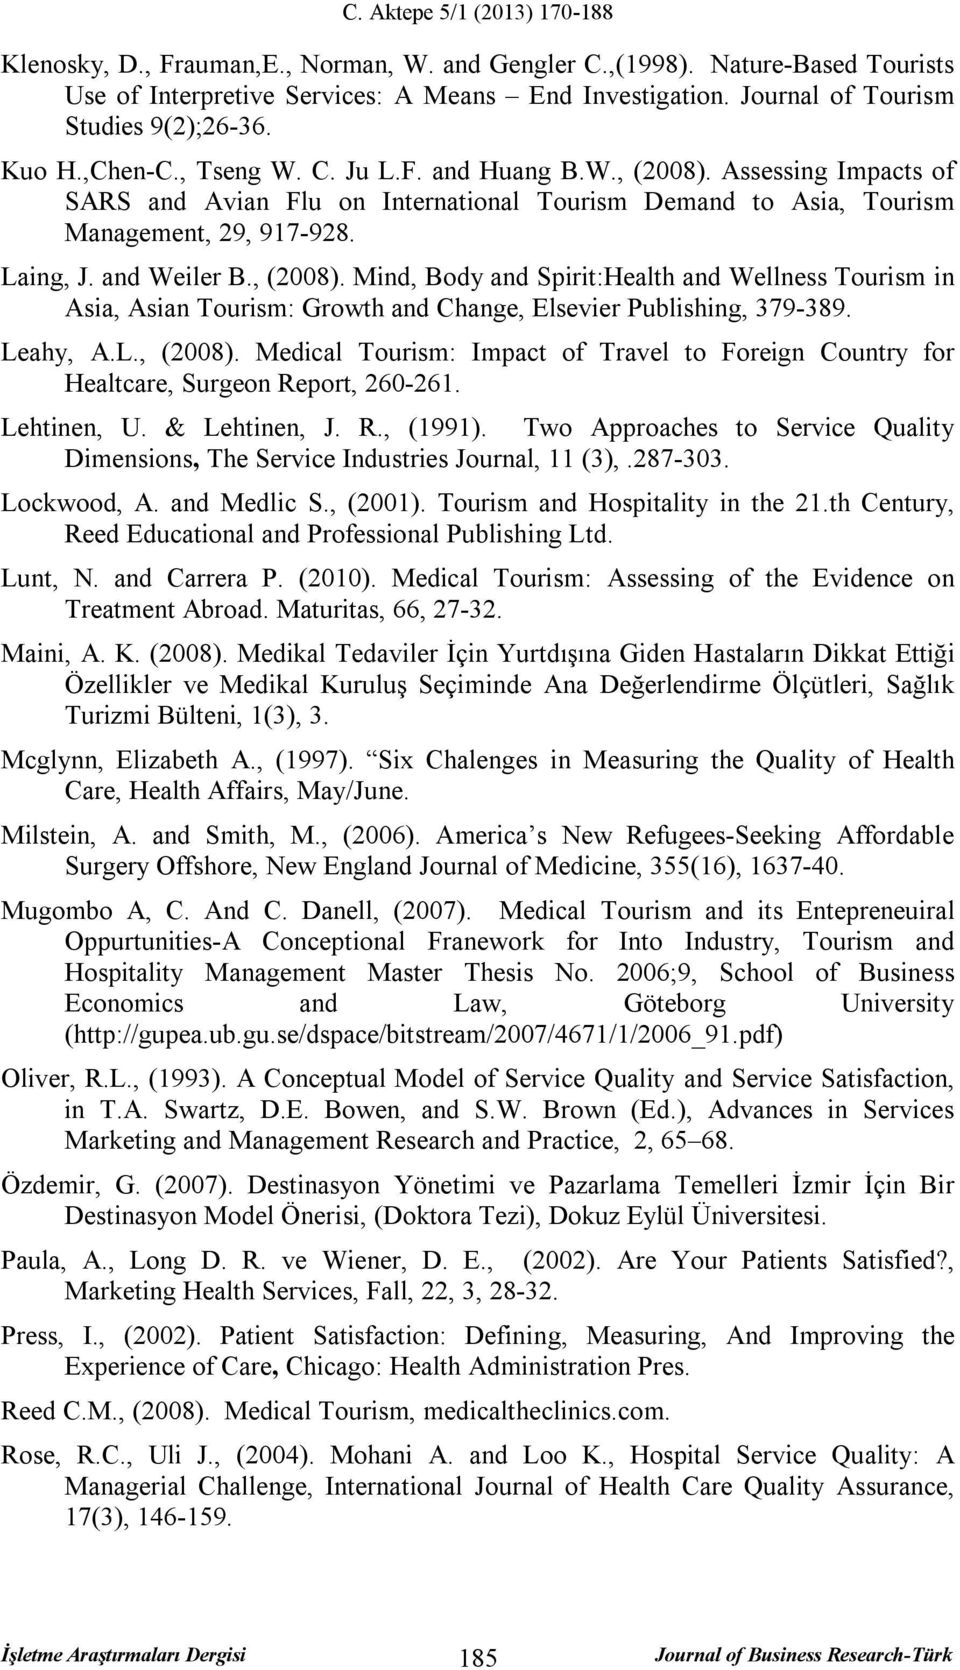 Leahy, A.L., (2008). Medical Tourism: Impact of Travel to Foreign Country for Healtcare, Surgeon Report, 260-261. Lehtinen, U. & Lehtinen, J. R., (1991).